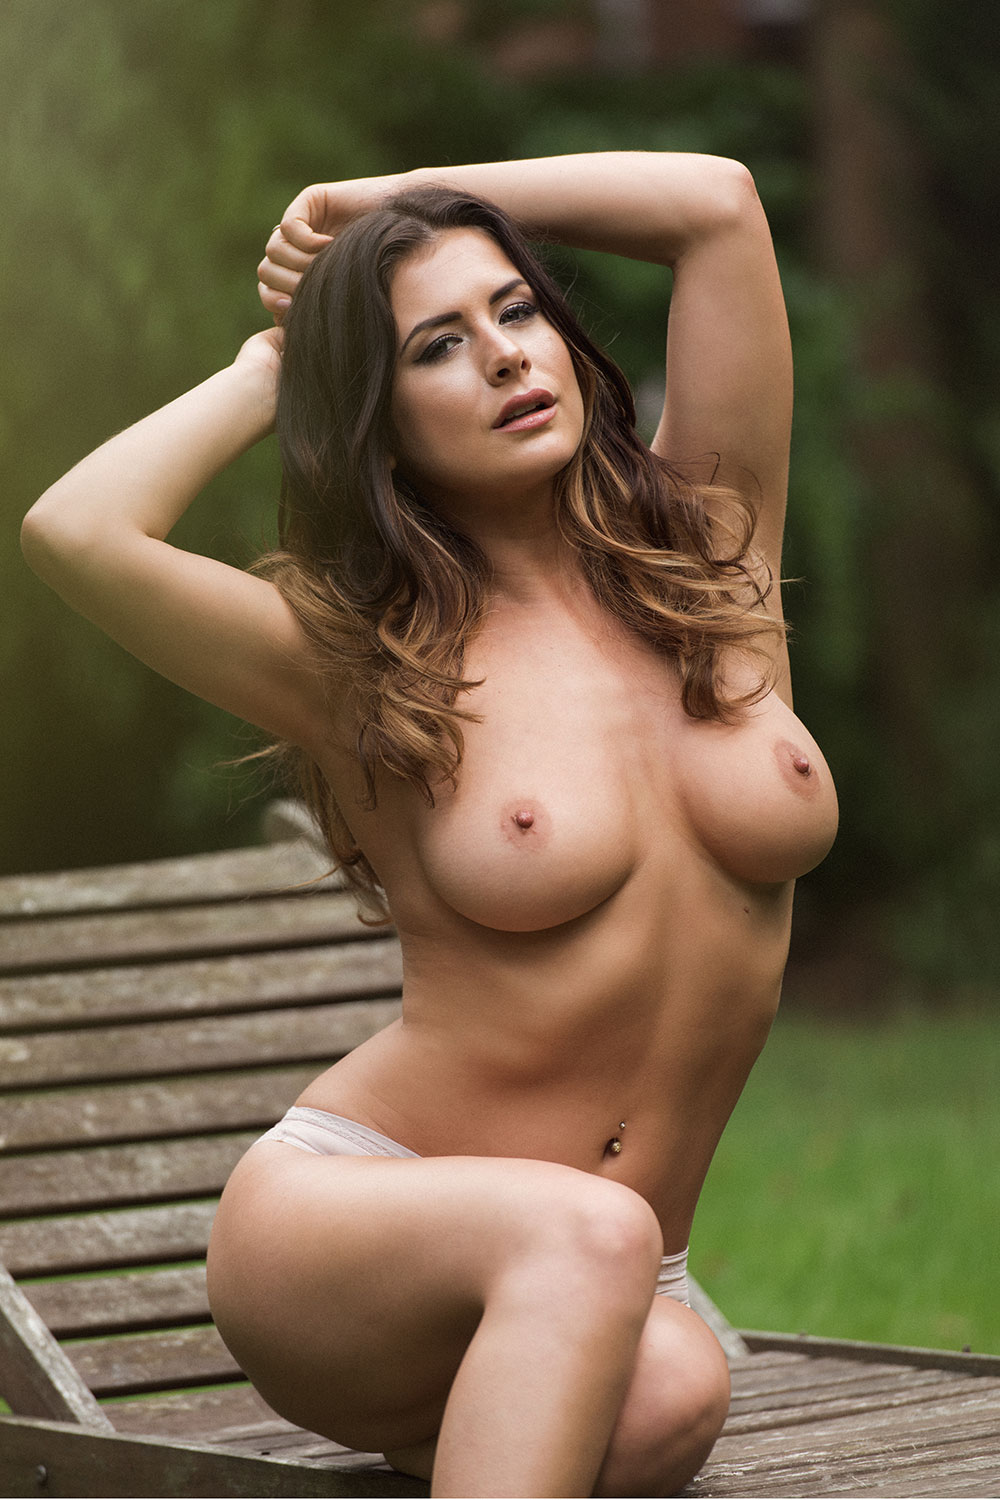 Kelly Hall Sexy Topless 3 1 Sn839